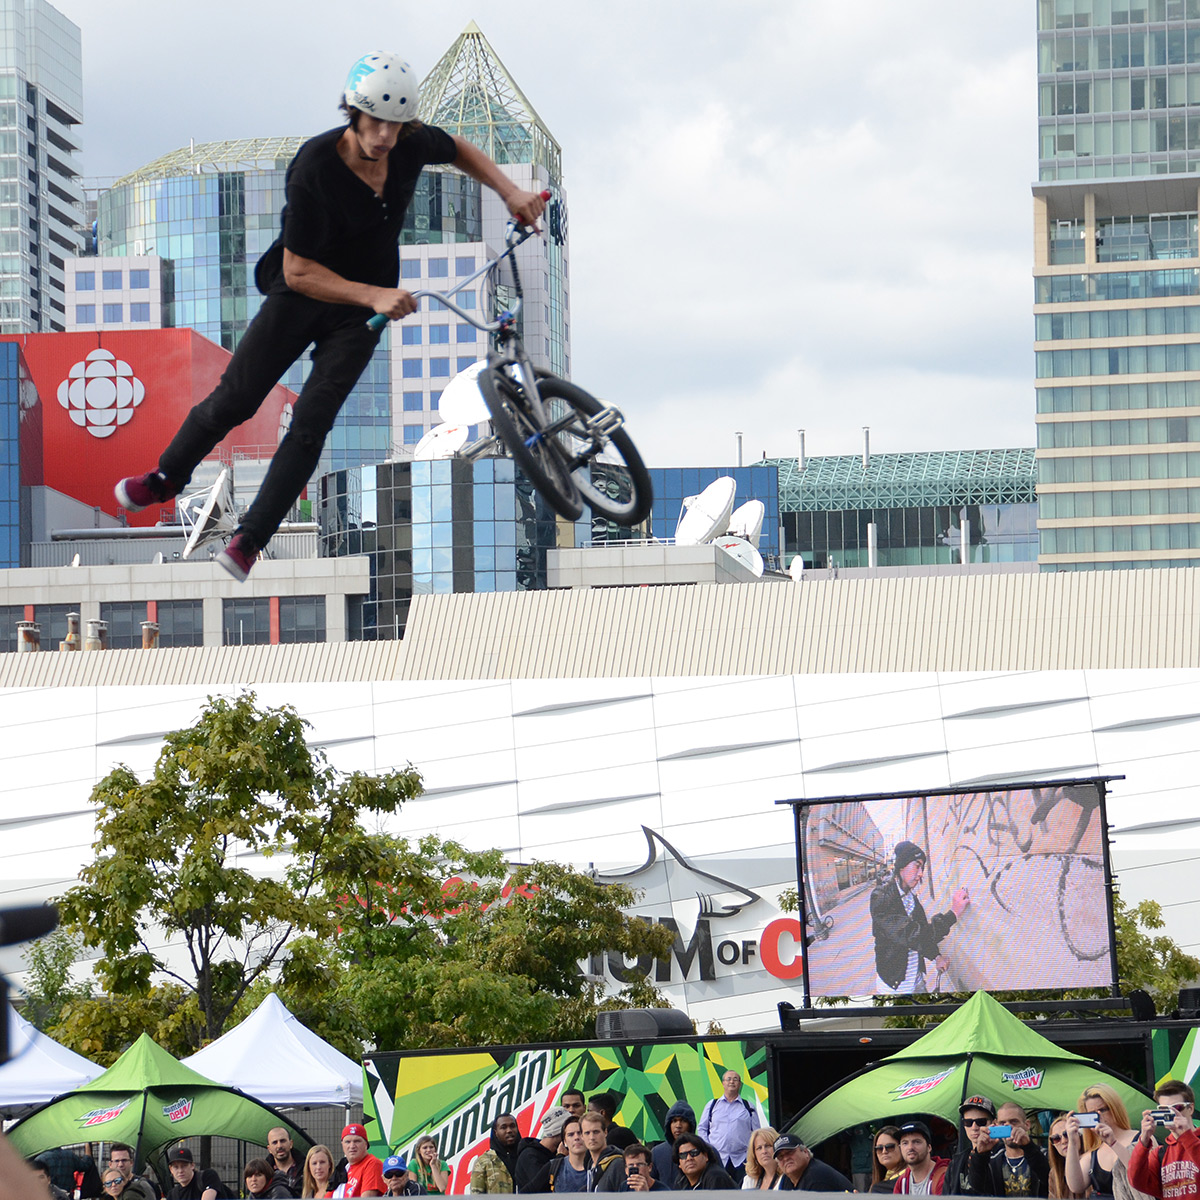 Joel Bondu whips at BMX Dew Tour Am Series in Toronto